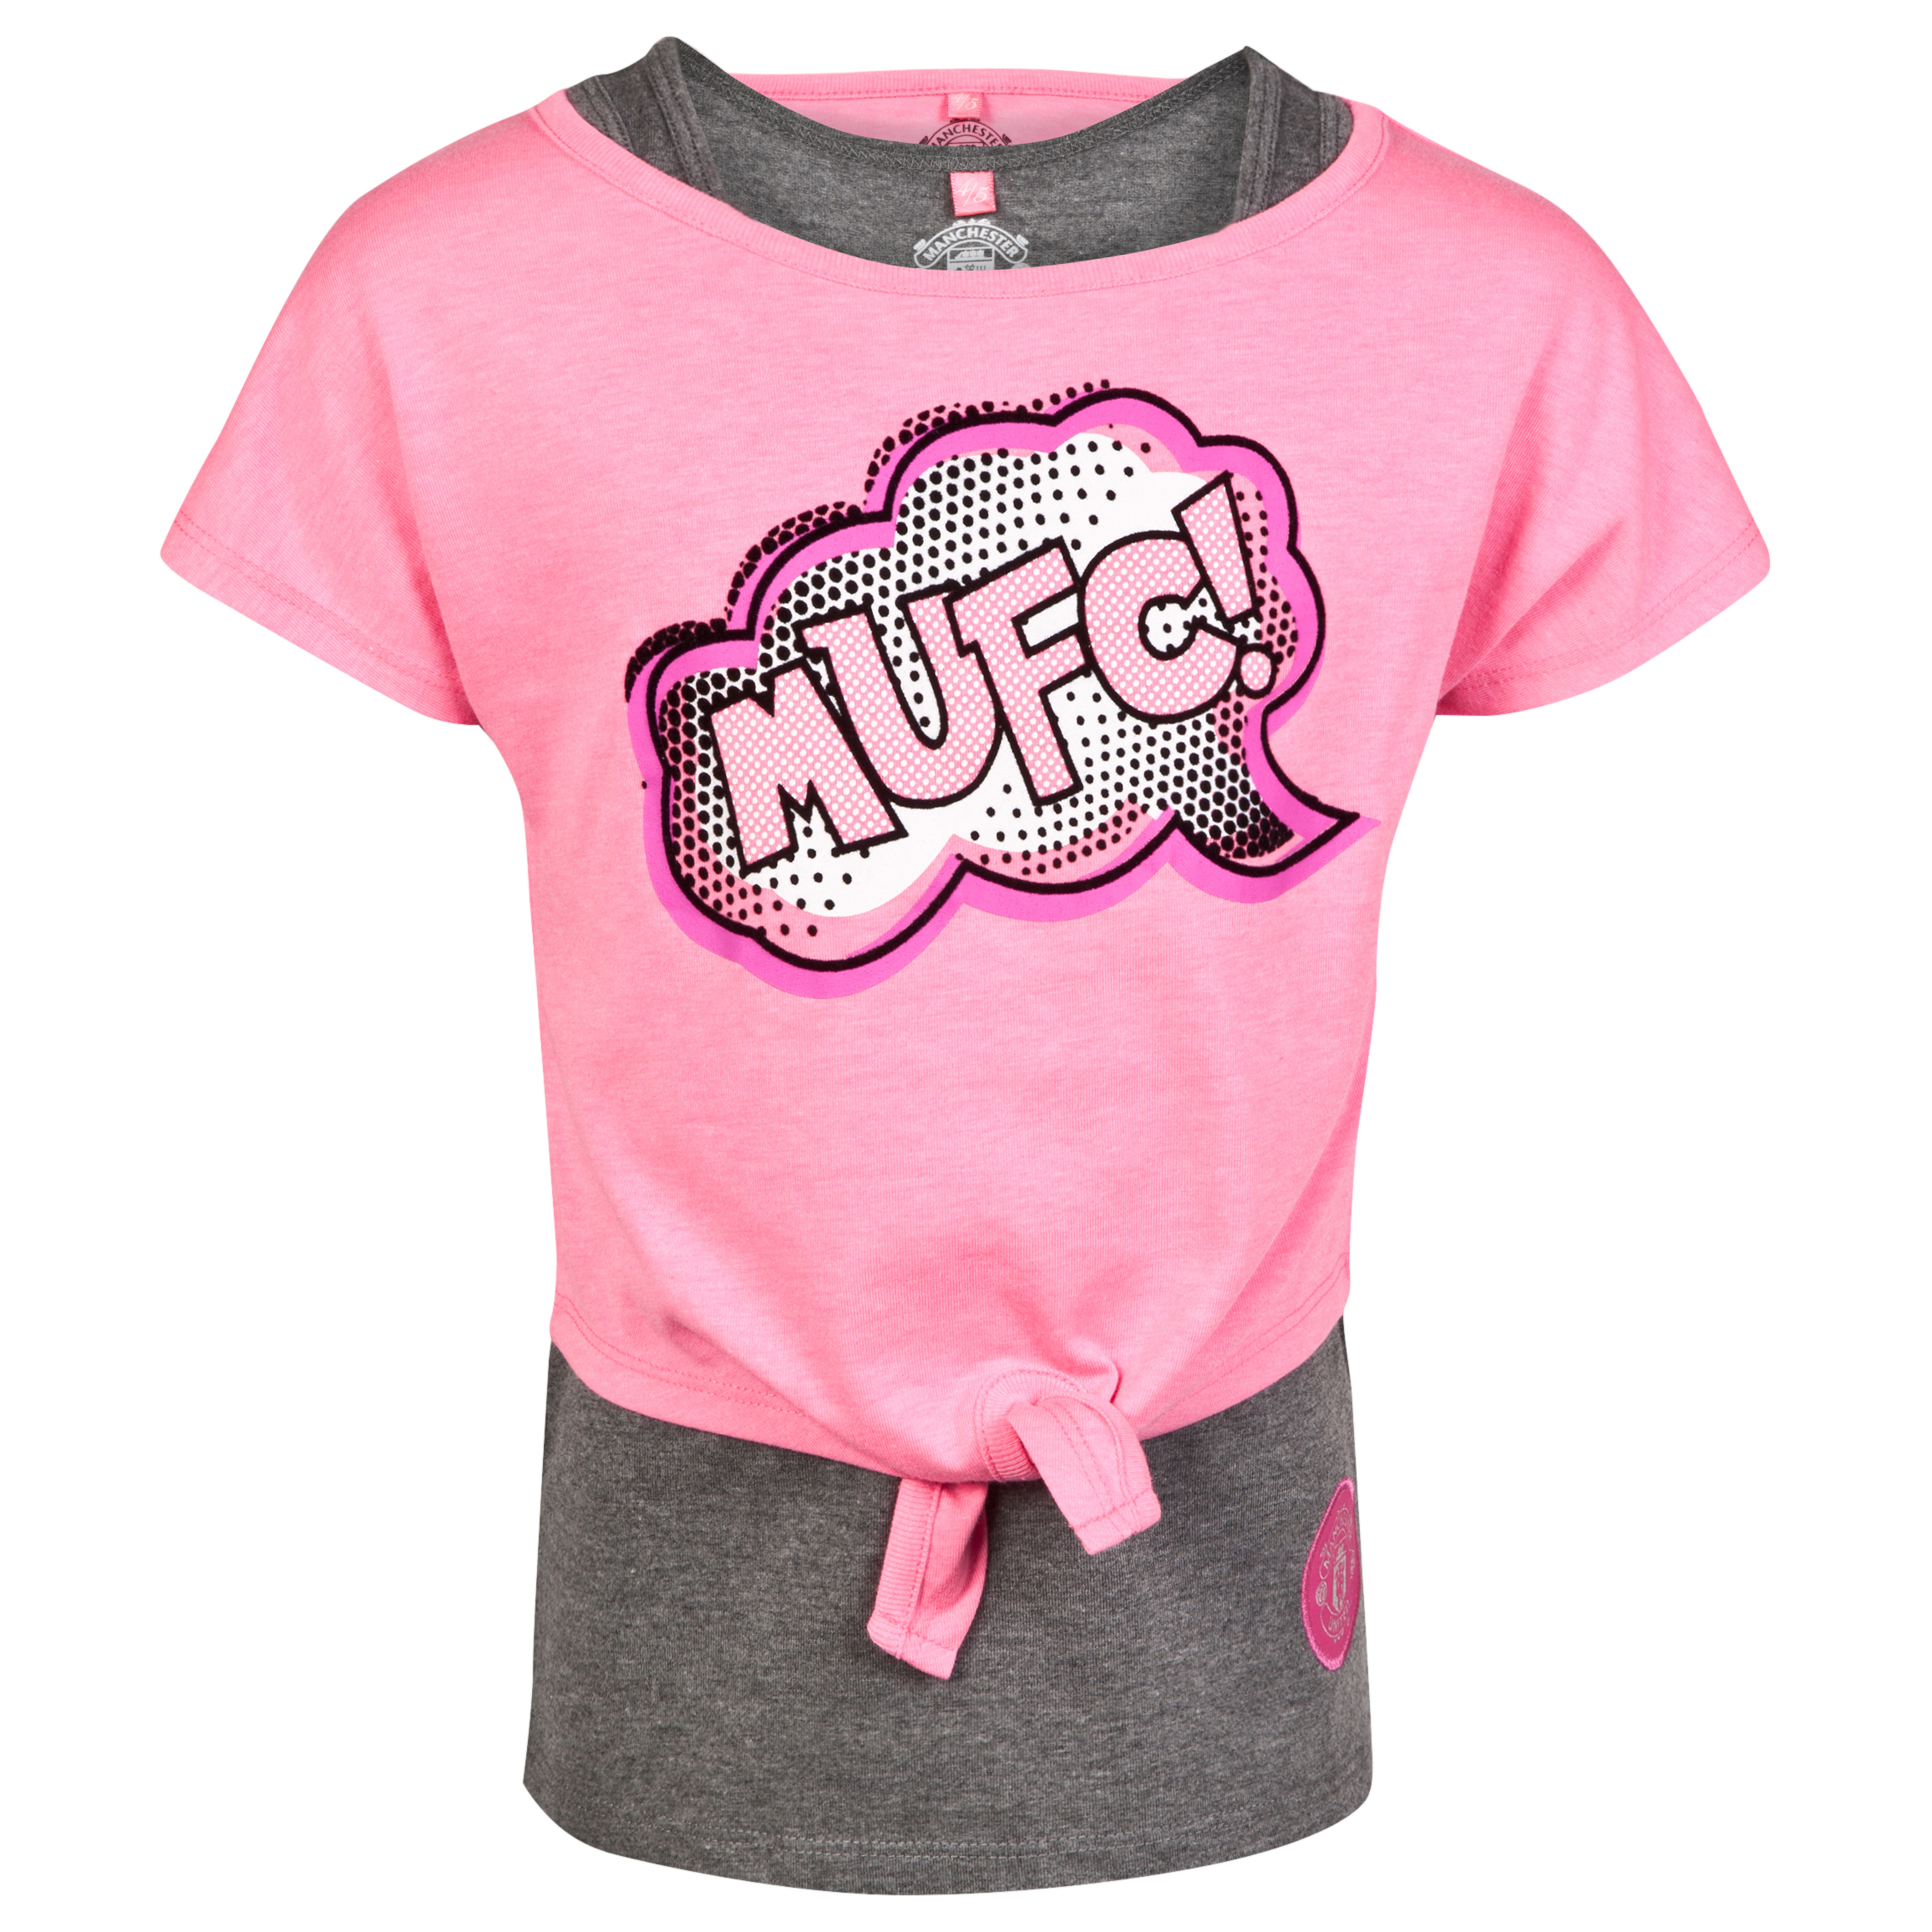 Manchester United Double Layer Tie T-Shirt - Wow Pink - Girls